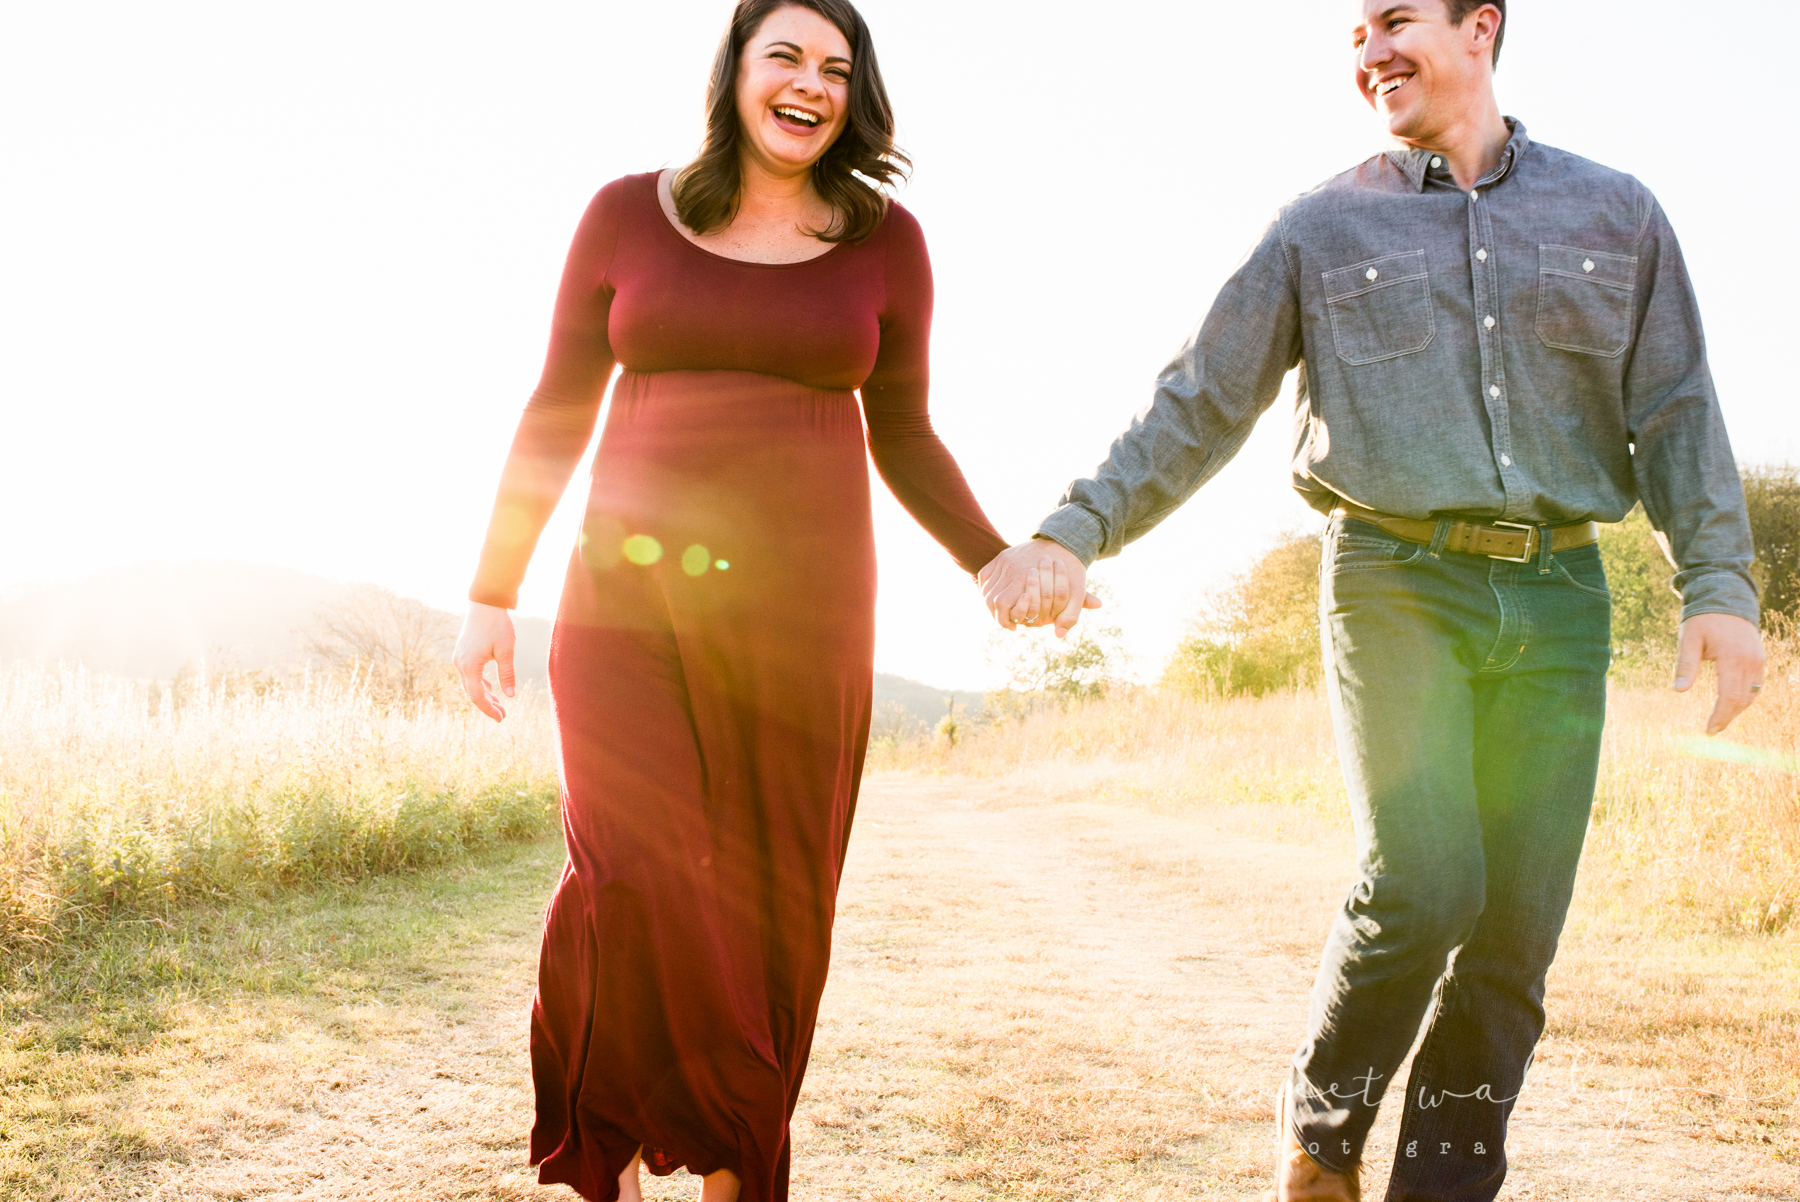 Those who laugh together, stay together | Maternity Photographer | Nashville, TN | Sweet Wally Photography